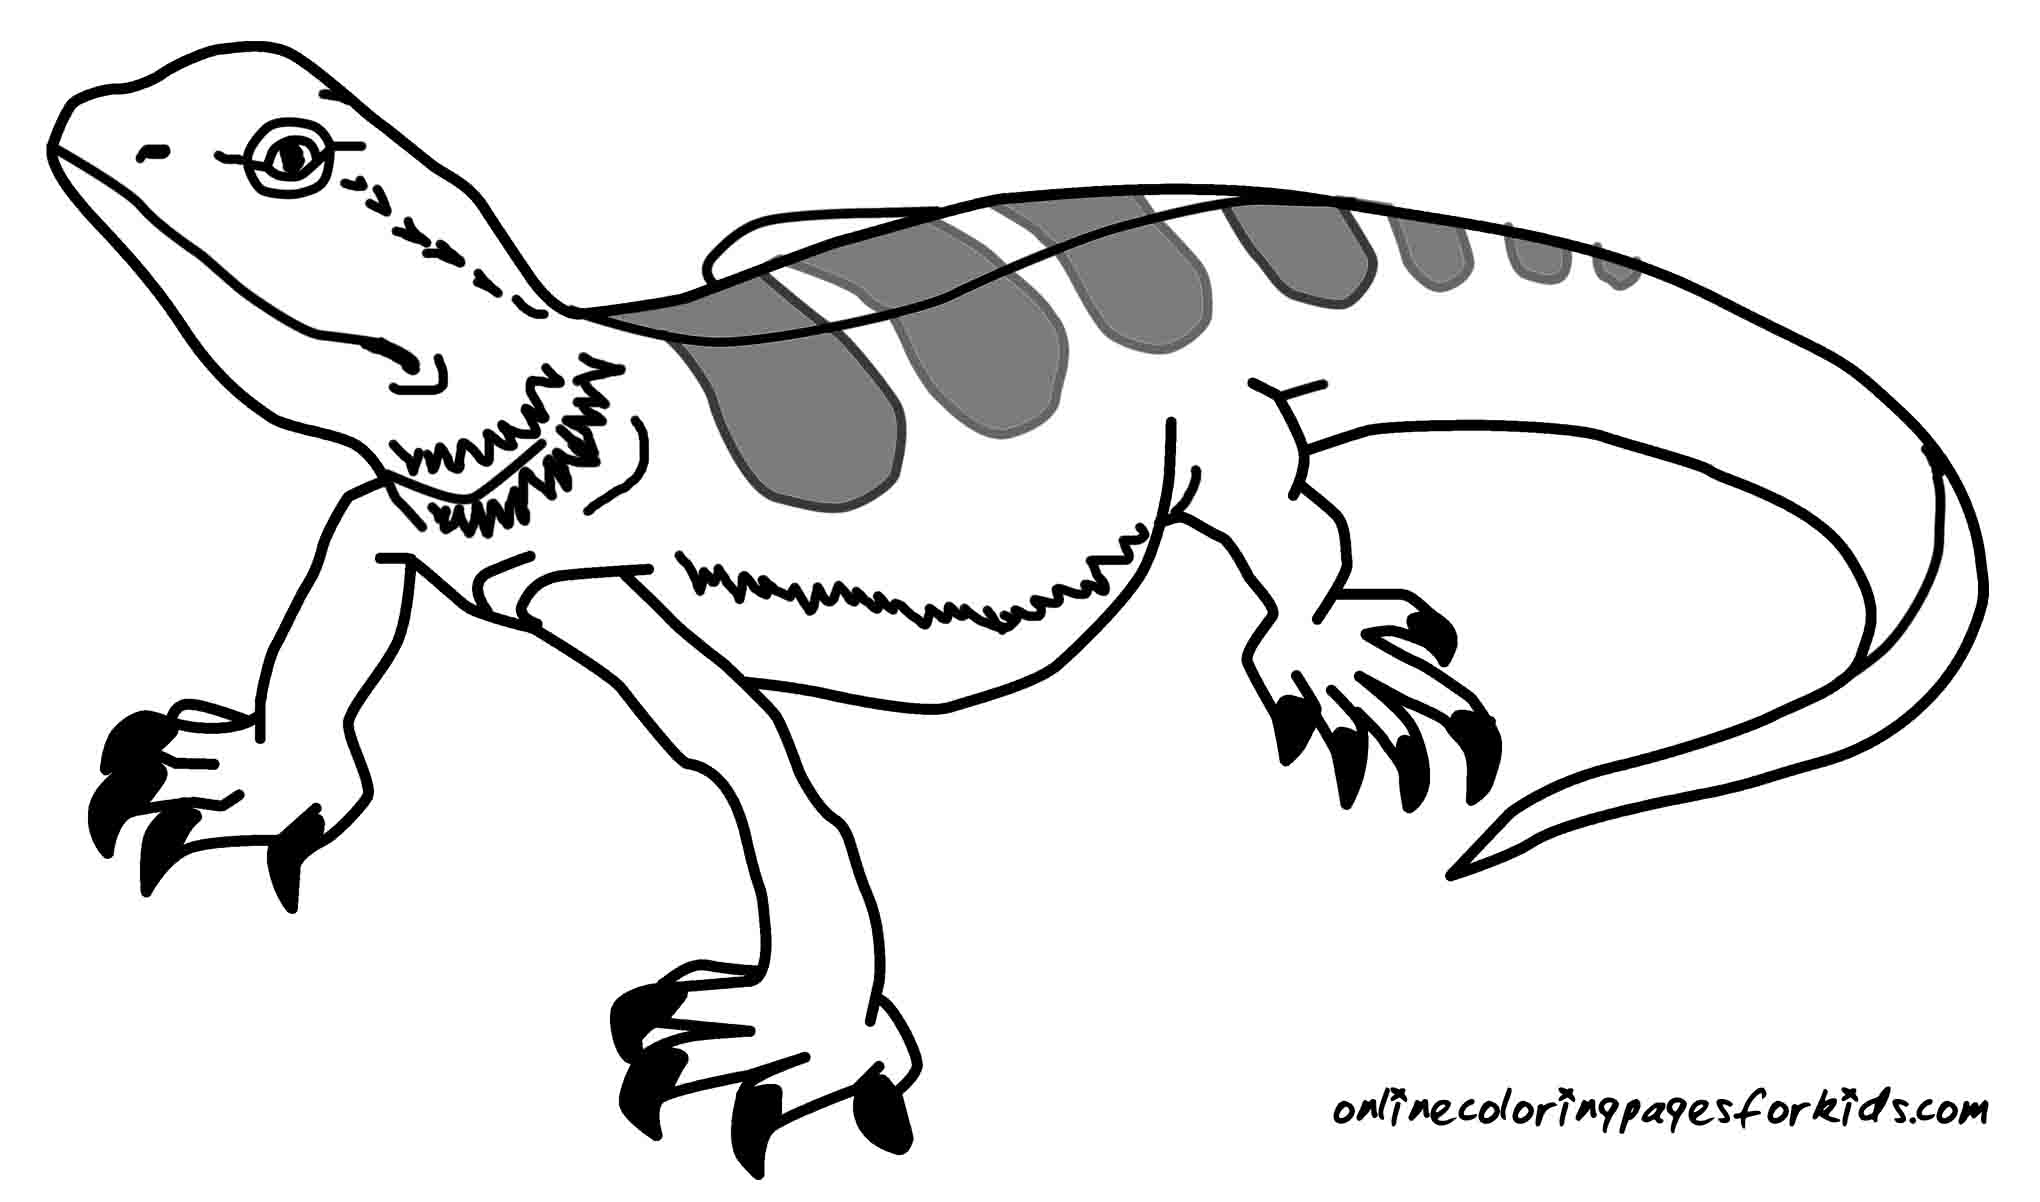 pictures of reptiles to color coloring pages snakes coloring pages free and printable to of reptiles pictures color